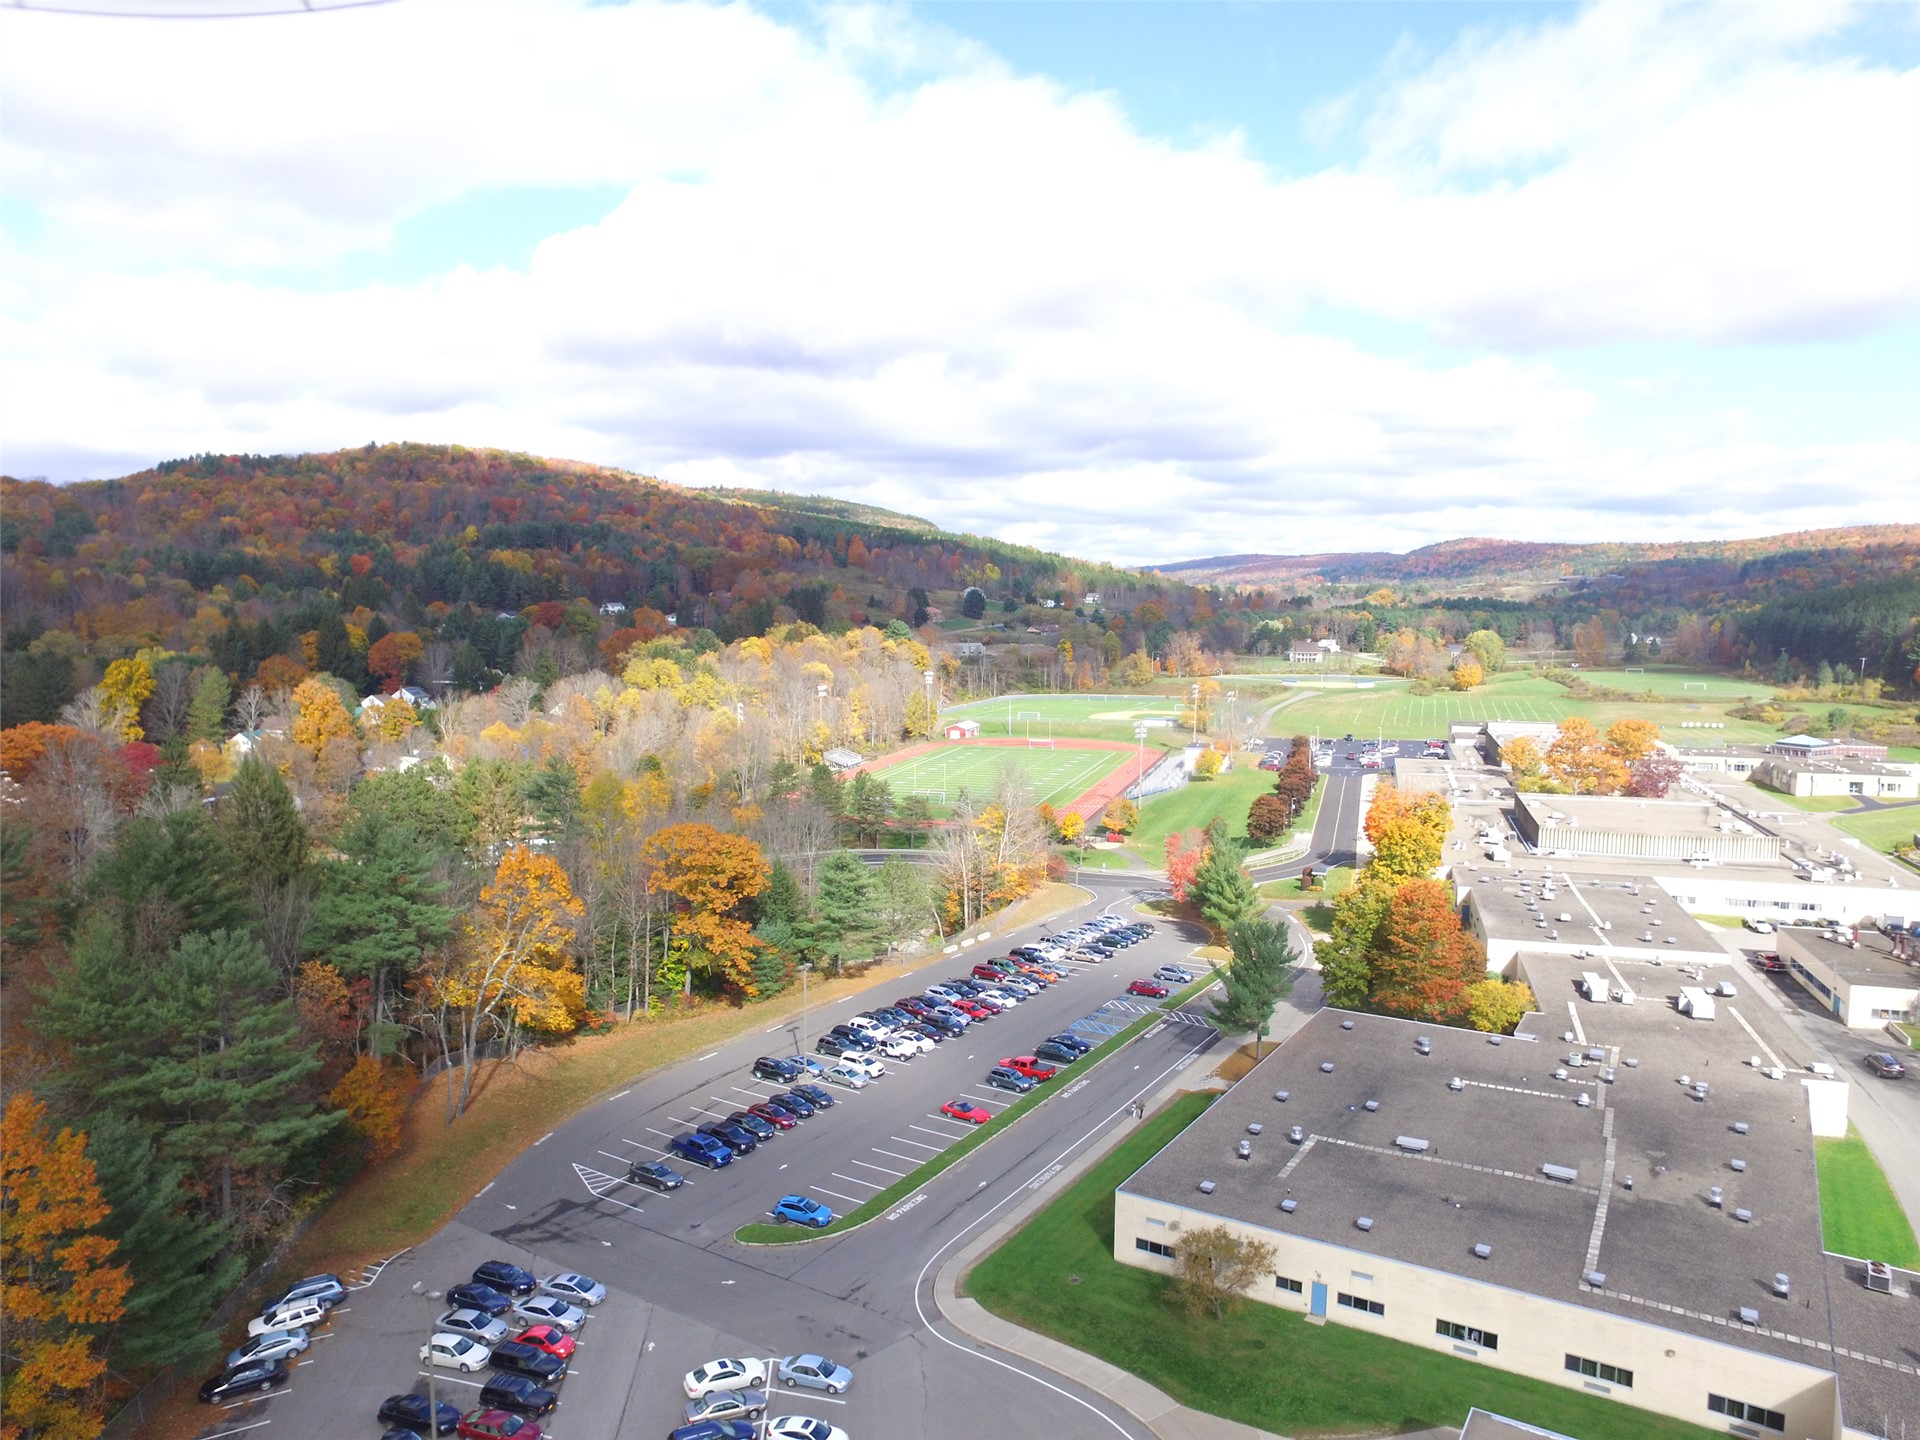 Aerial image of the Oneonta Middle School campus